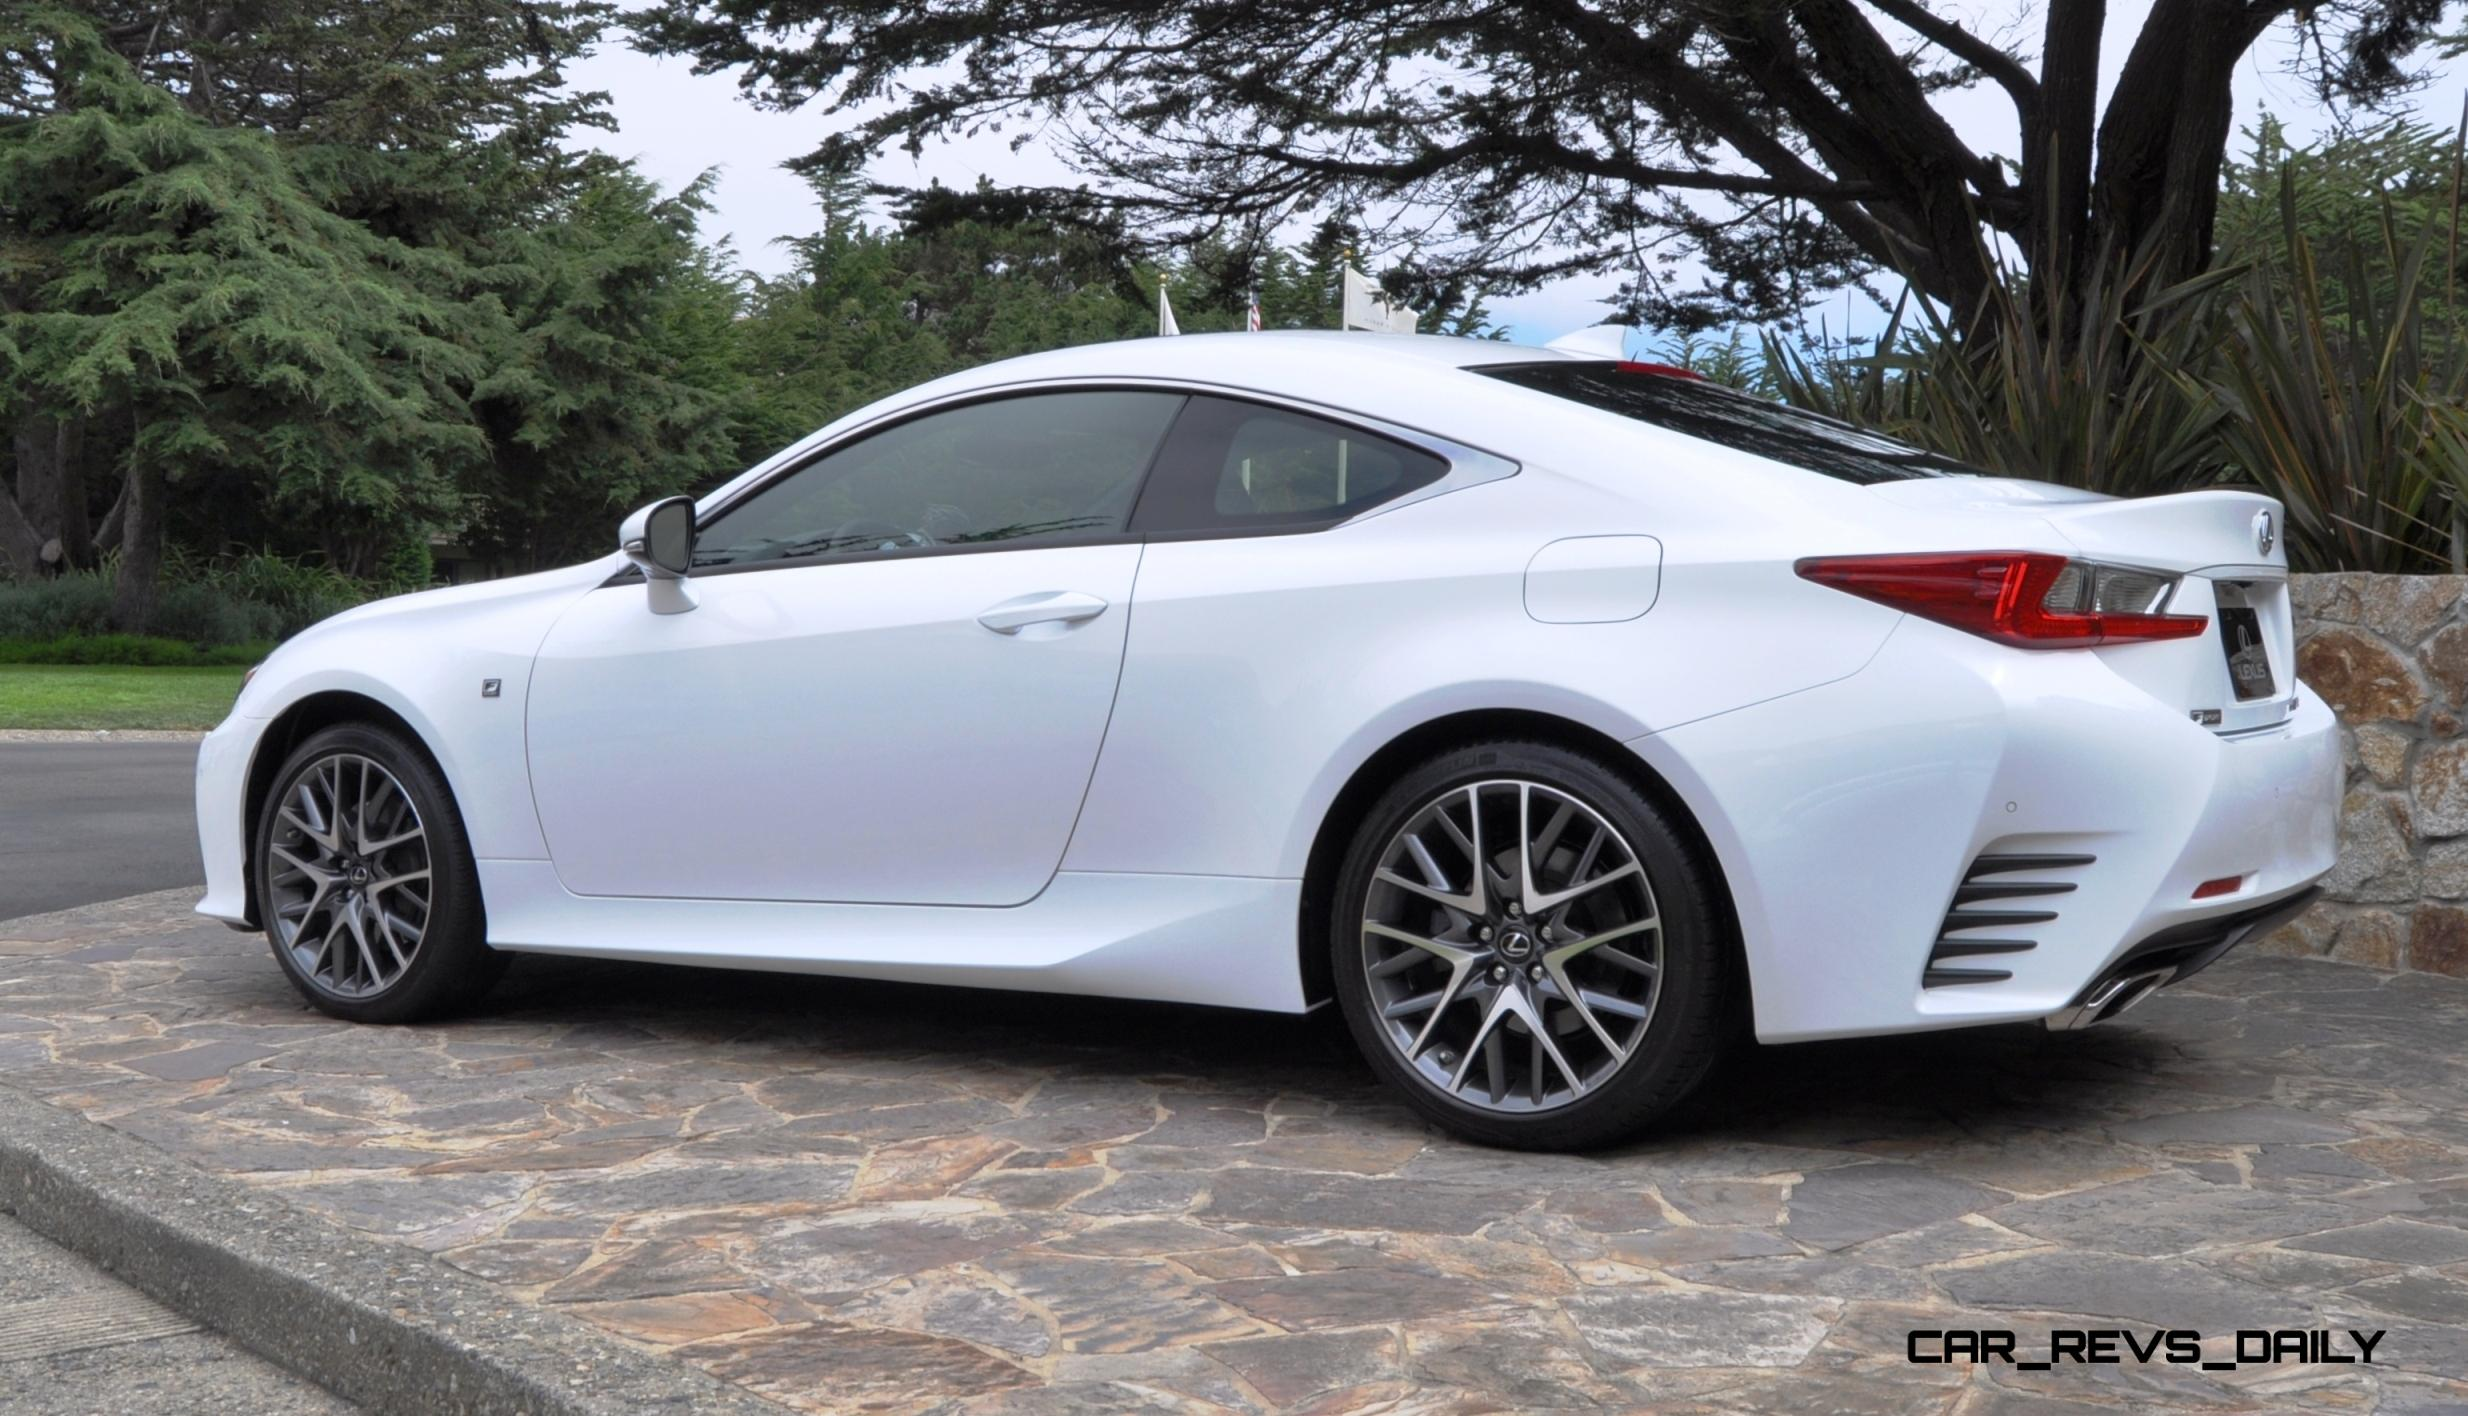 2015 Lexus RC350 F Sport EXCLUSIVE 8 Speed Auto, AWD, 4WS And Adaptive  Suspension! 19